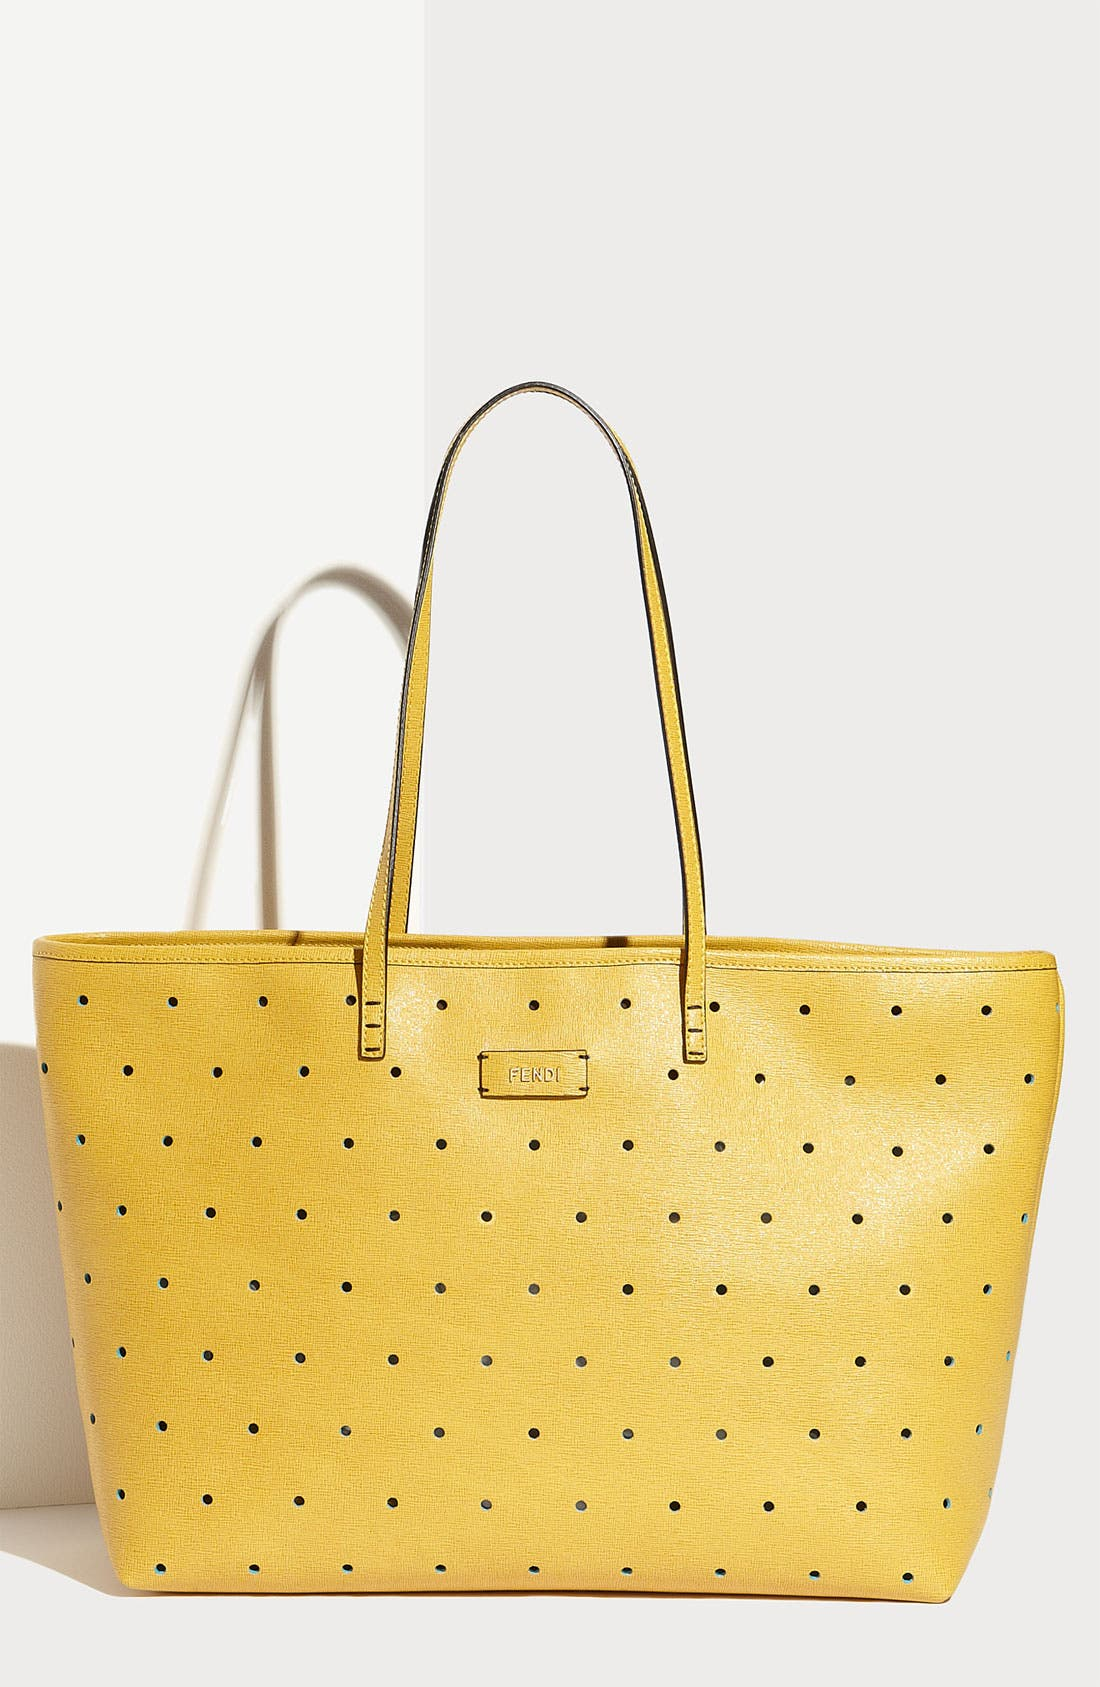 Main Image - Fendi 'Roll' Perforated Tote